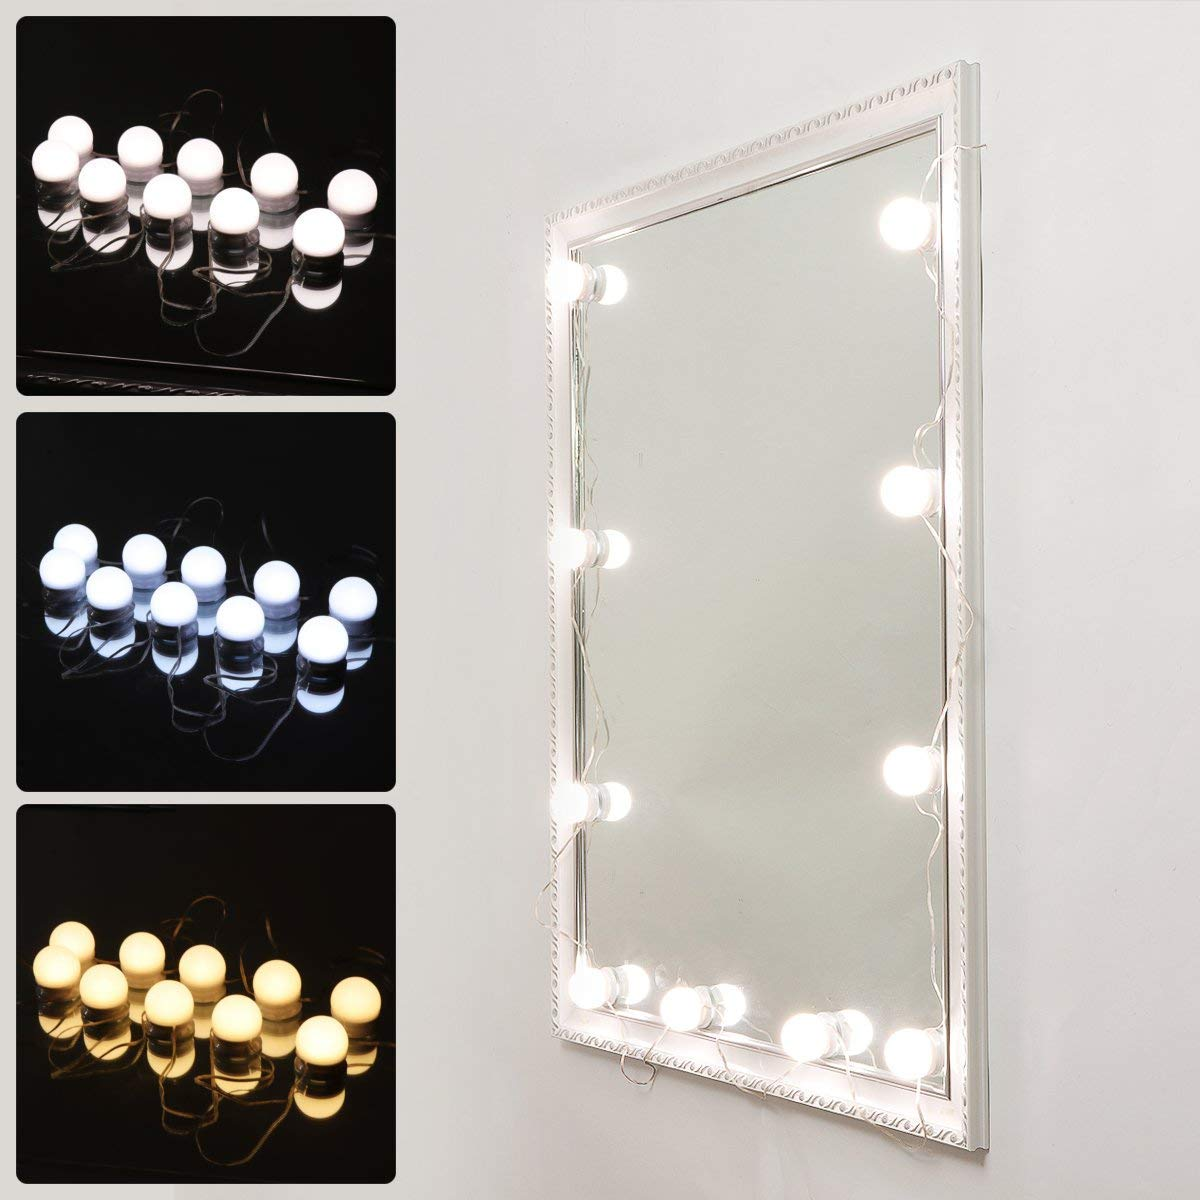 Vanity Mirror Makeup Lamp, KeepTpeeK 10 Bulbs Vanity 3 Color Lighting Modes Brightness Dimmable USB Charge LED Mirror Light for Bedroom Makeup Vanity Table